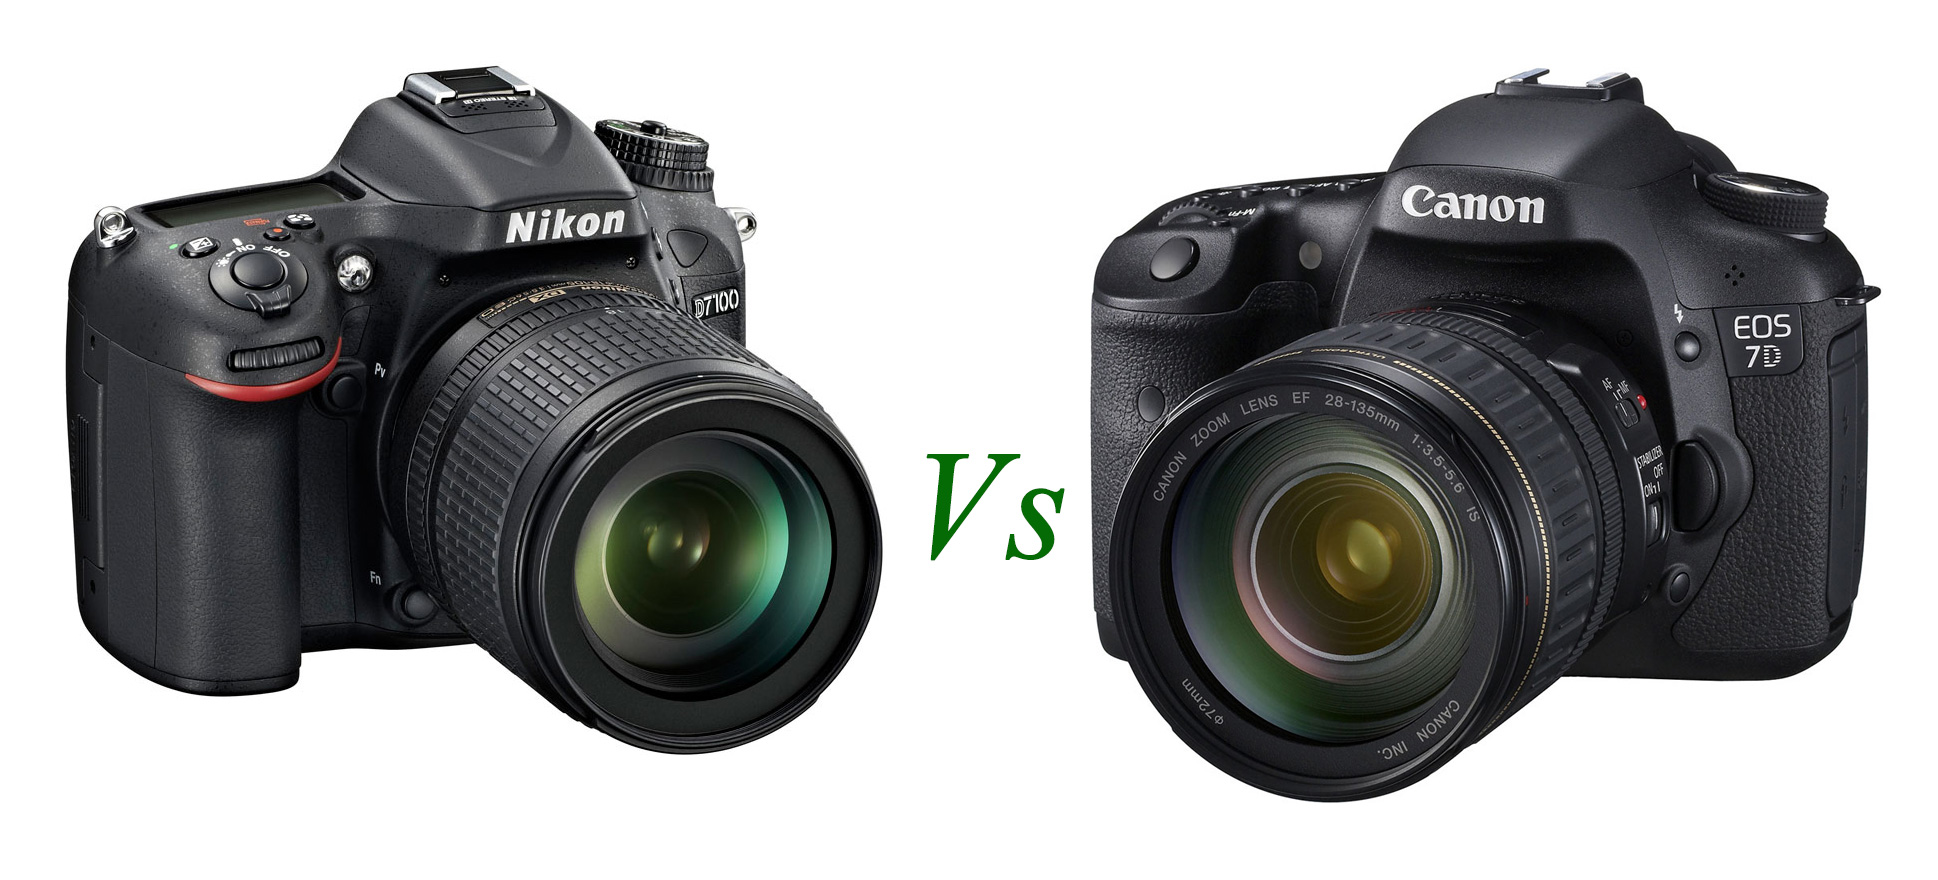 on new released Nikon D7100 and Canon EOS 7D . See the detail below